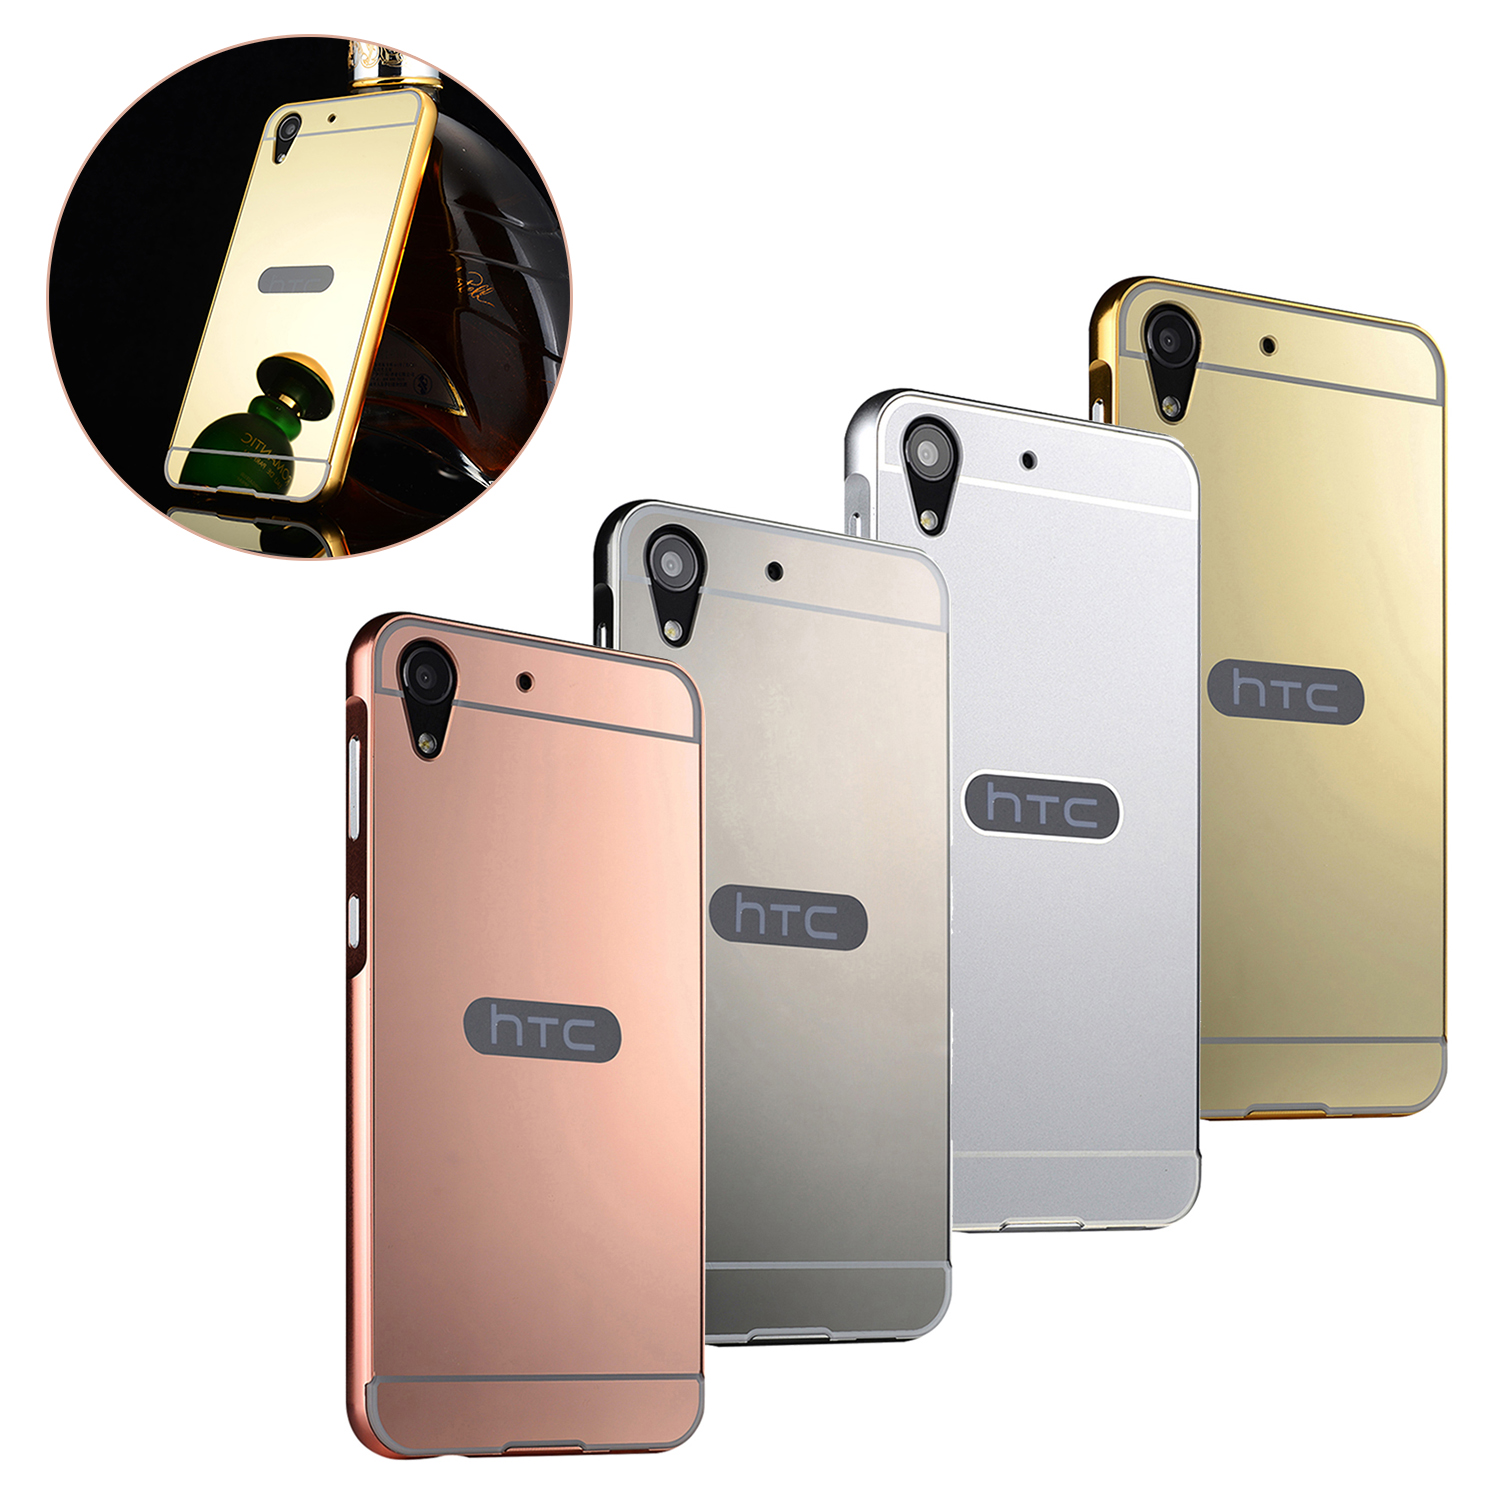 competitive price 1f90a 86ecc Details about Luxury Mirror Back Cover Metal Aluminum Frame Case for HTC  Desire 626 820 728